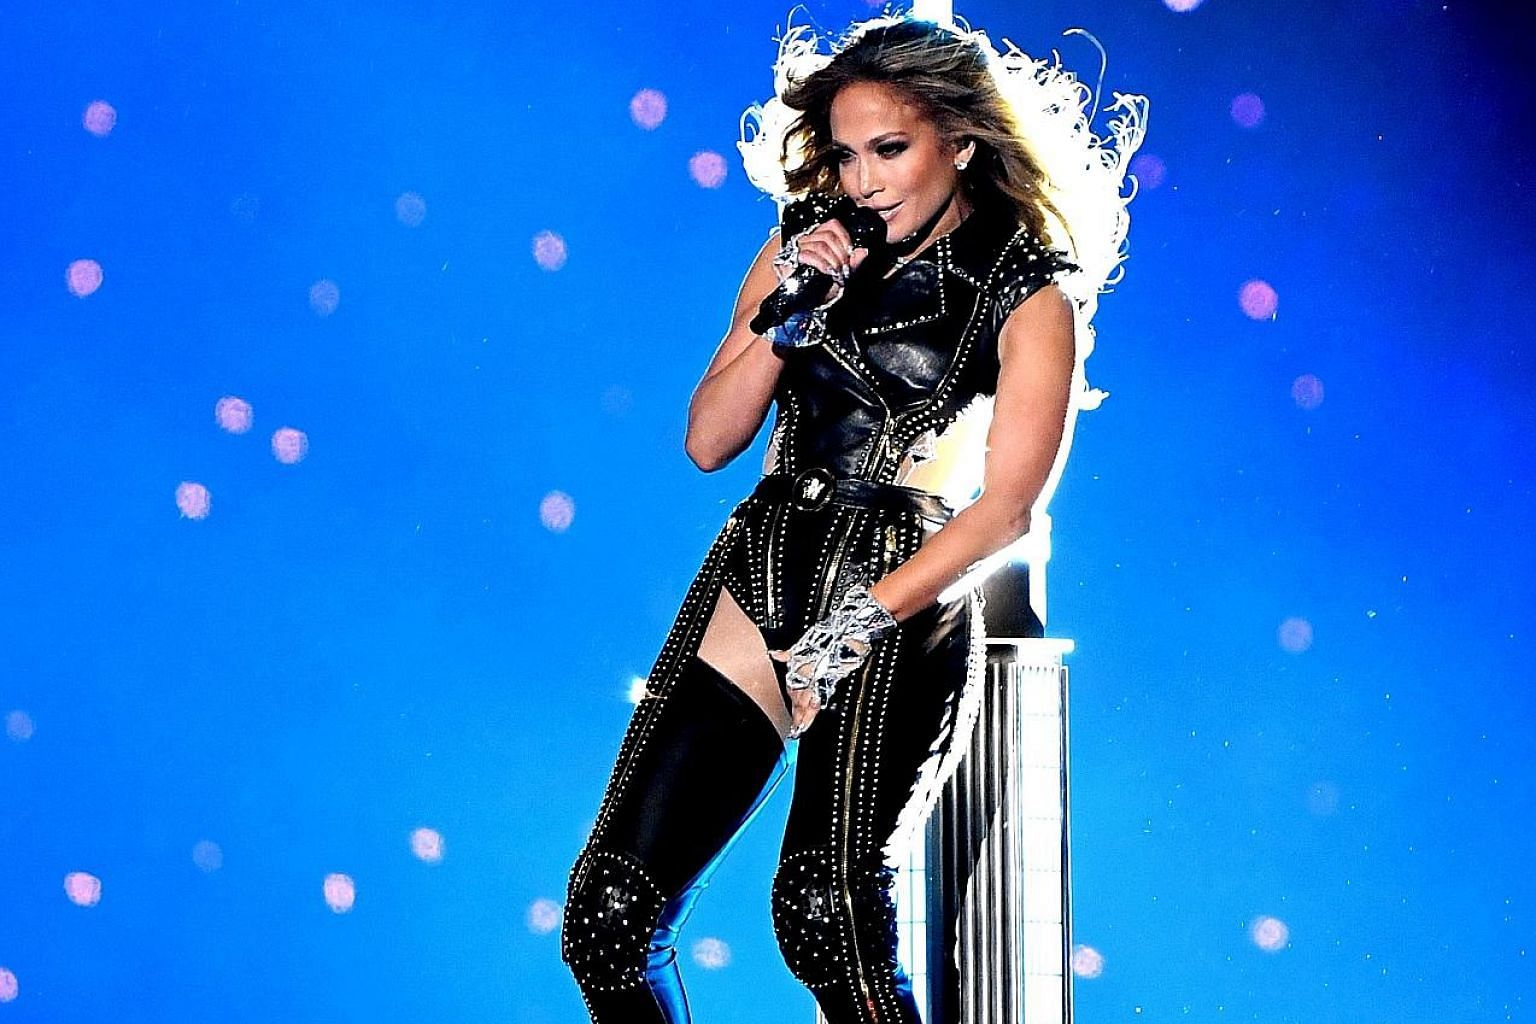 Singer Jennifer Lopez performing onstage during the Super Bowl half-time show at Hard Rock Stadium in Miami, Florida, on Sunday.